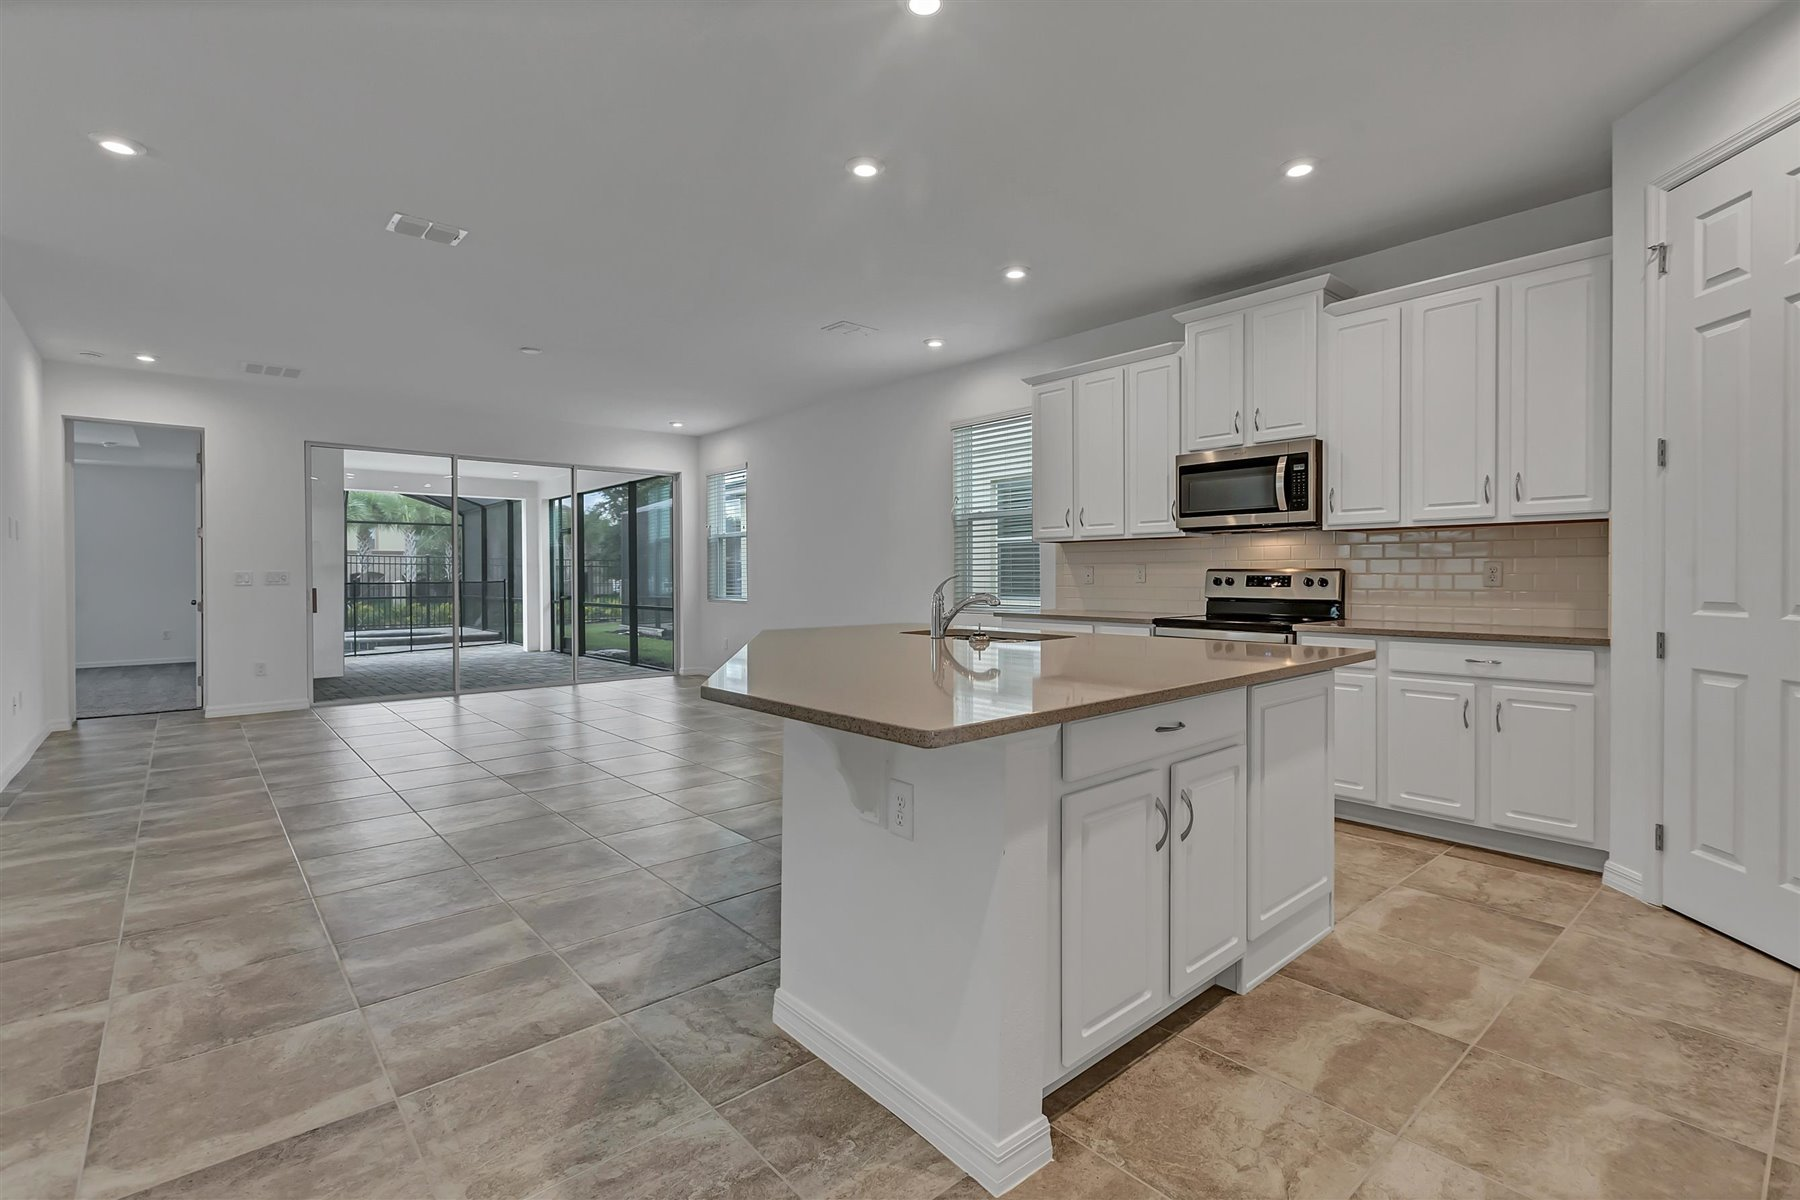 Malibu II Plan Kitchen at Solara Resort in Kissimmee Florida by Mattamy Homes